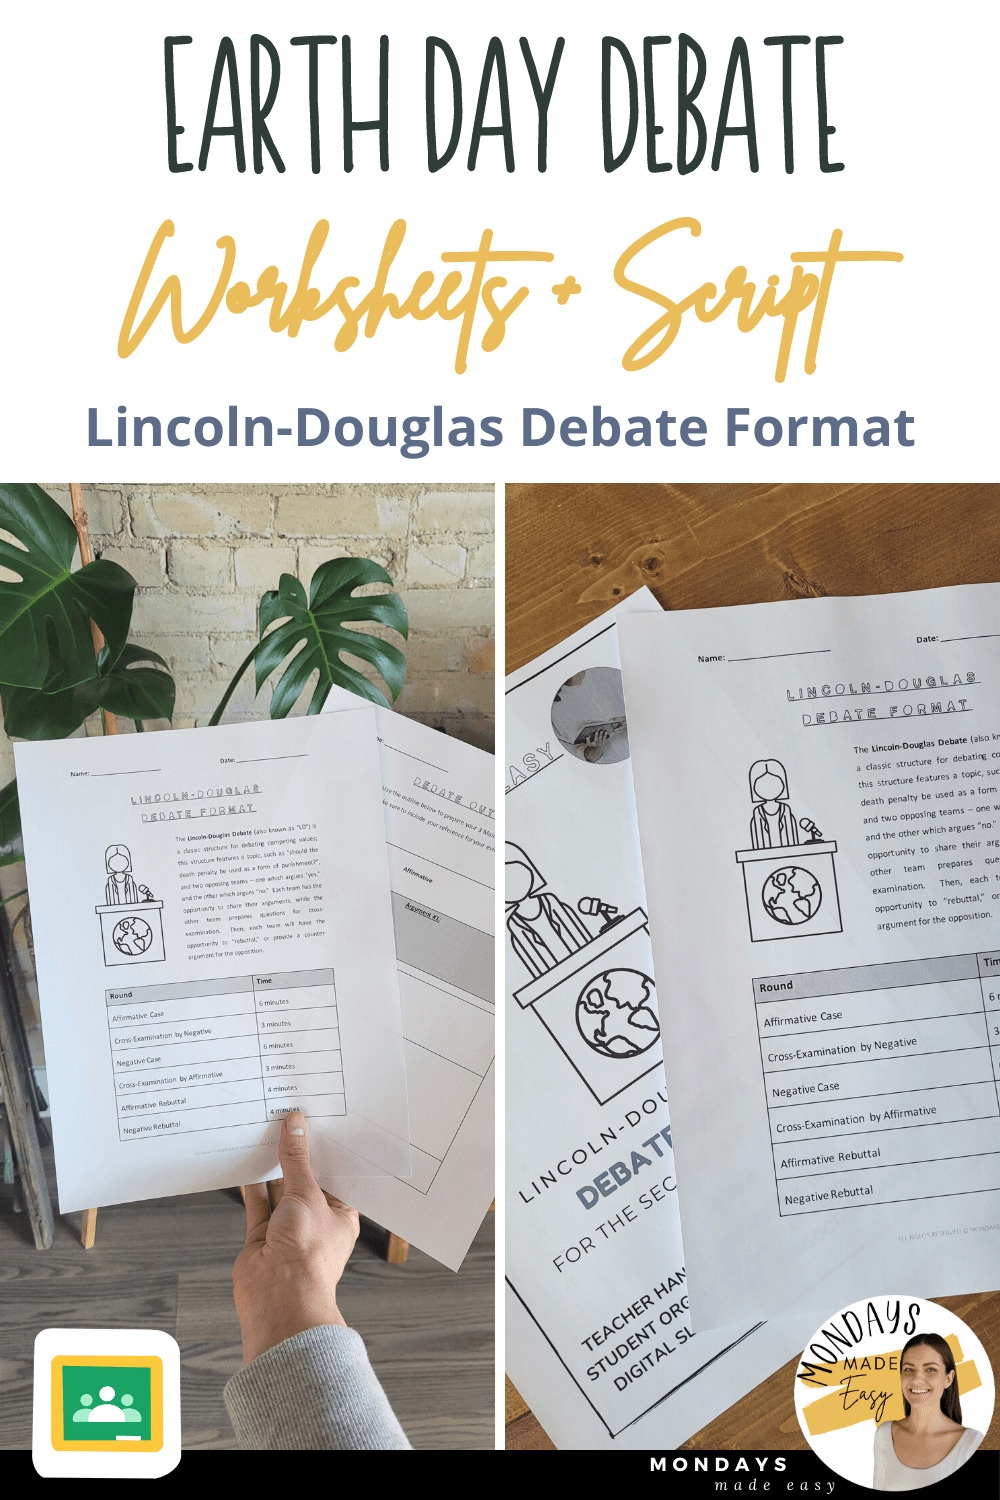 Earth Day Debate: Worksheets and Script for the Lincoln-Douglas Debate Format